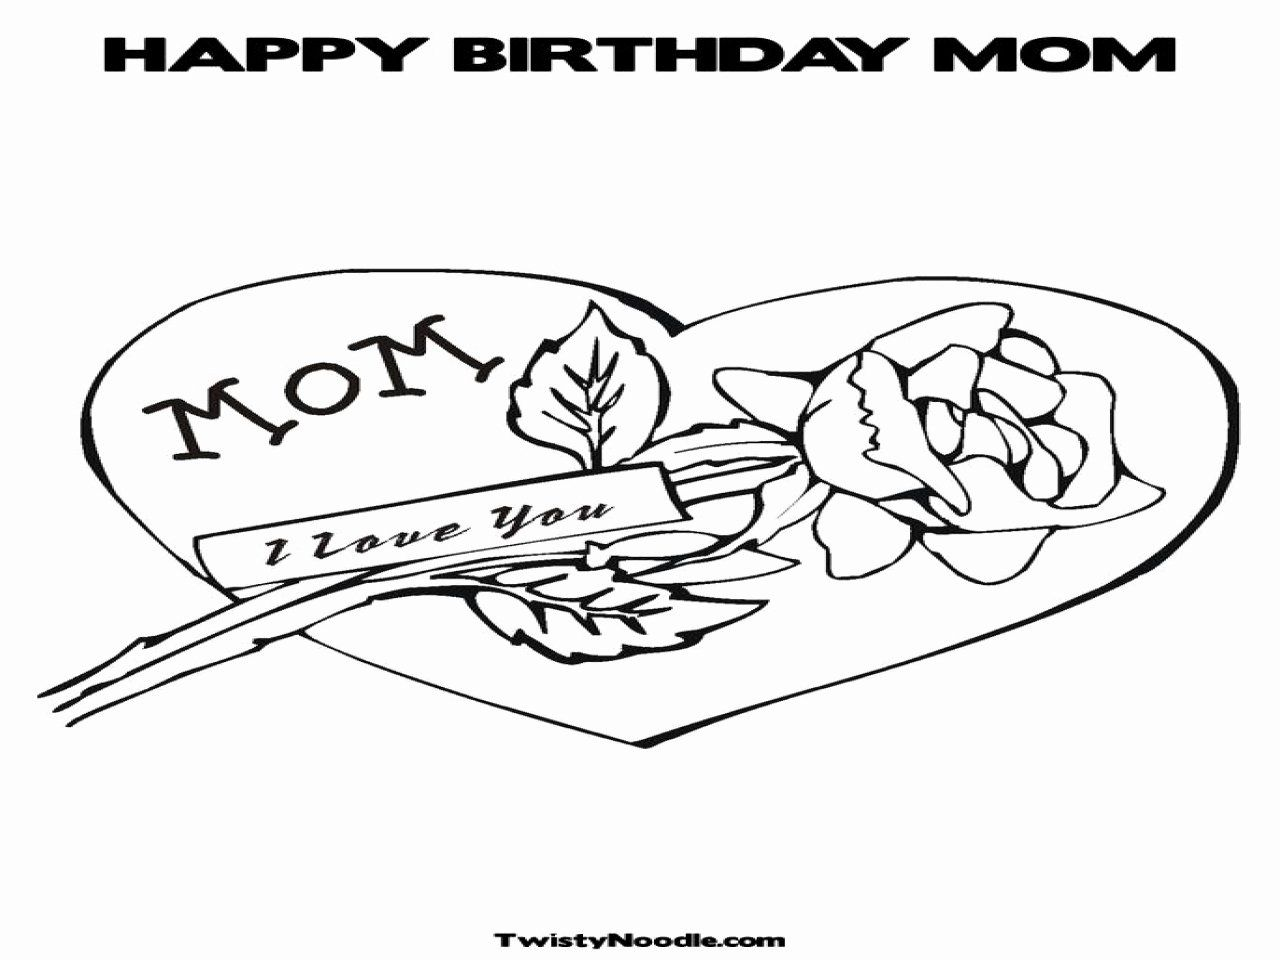 Happy Birthday Mommy Coloring Page Lovely Happy Birthday Mommy Coloring Pages To Print Mom Coloring Pages Baby Coloring Pages Heart Coloring Pages